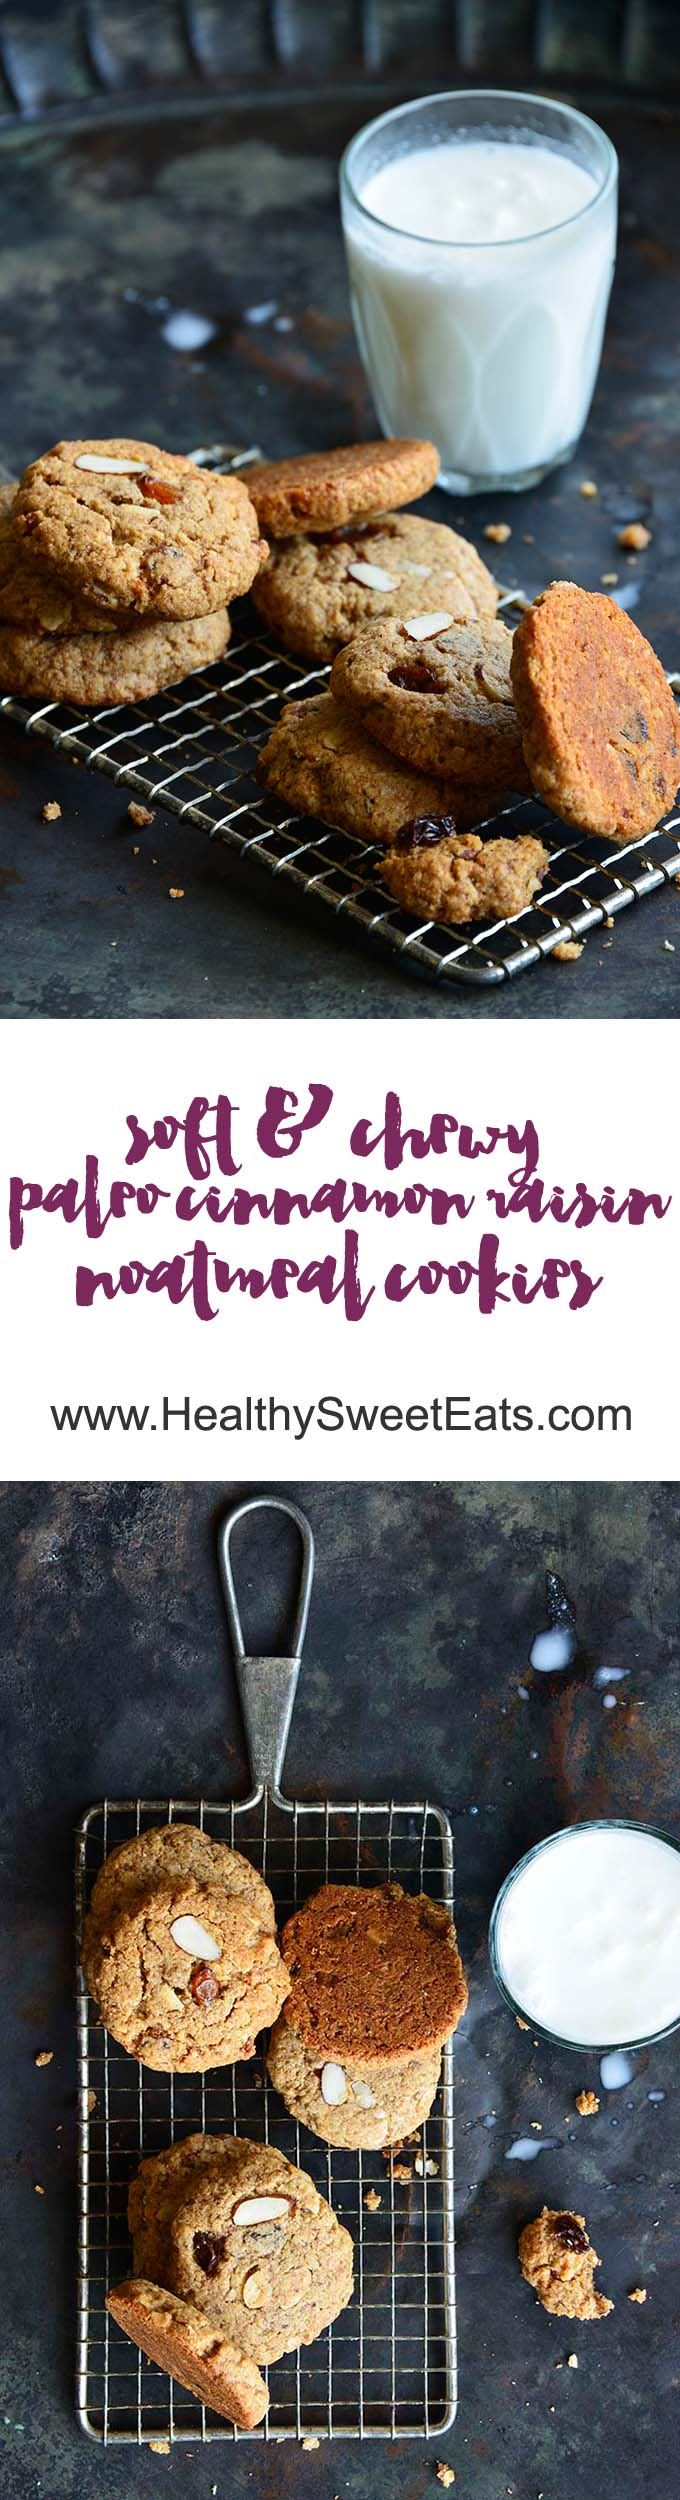 Soft and Chewy Paleo Cinnamon Raisin Noatmeal Cookies Long Pin